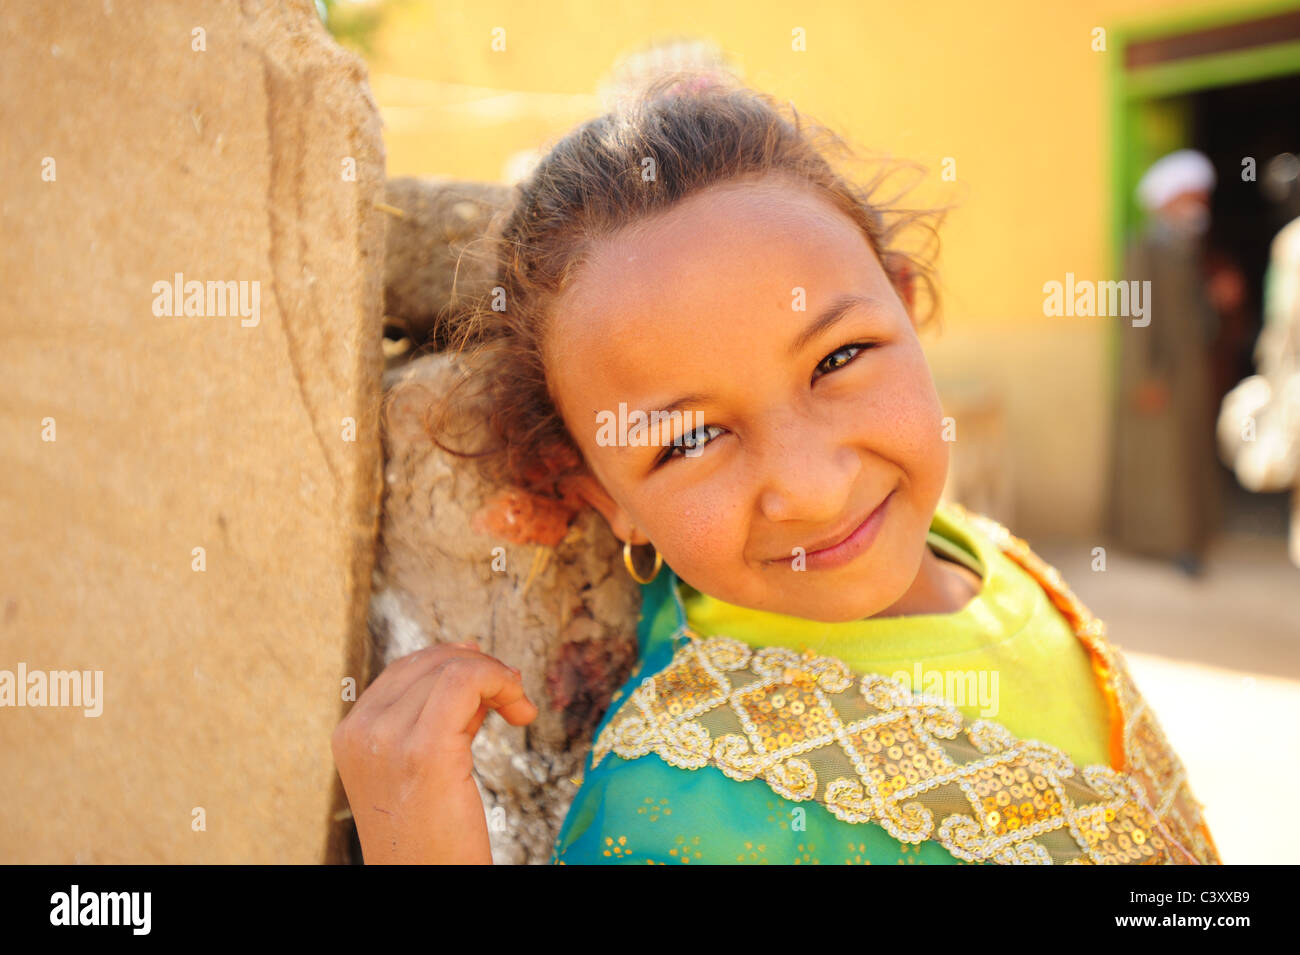 africa-middle-east-egypt-egyptian-young-girl-8-9-10-in-the-country-C3XXB9.jpg